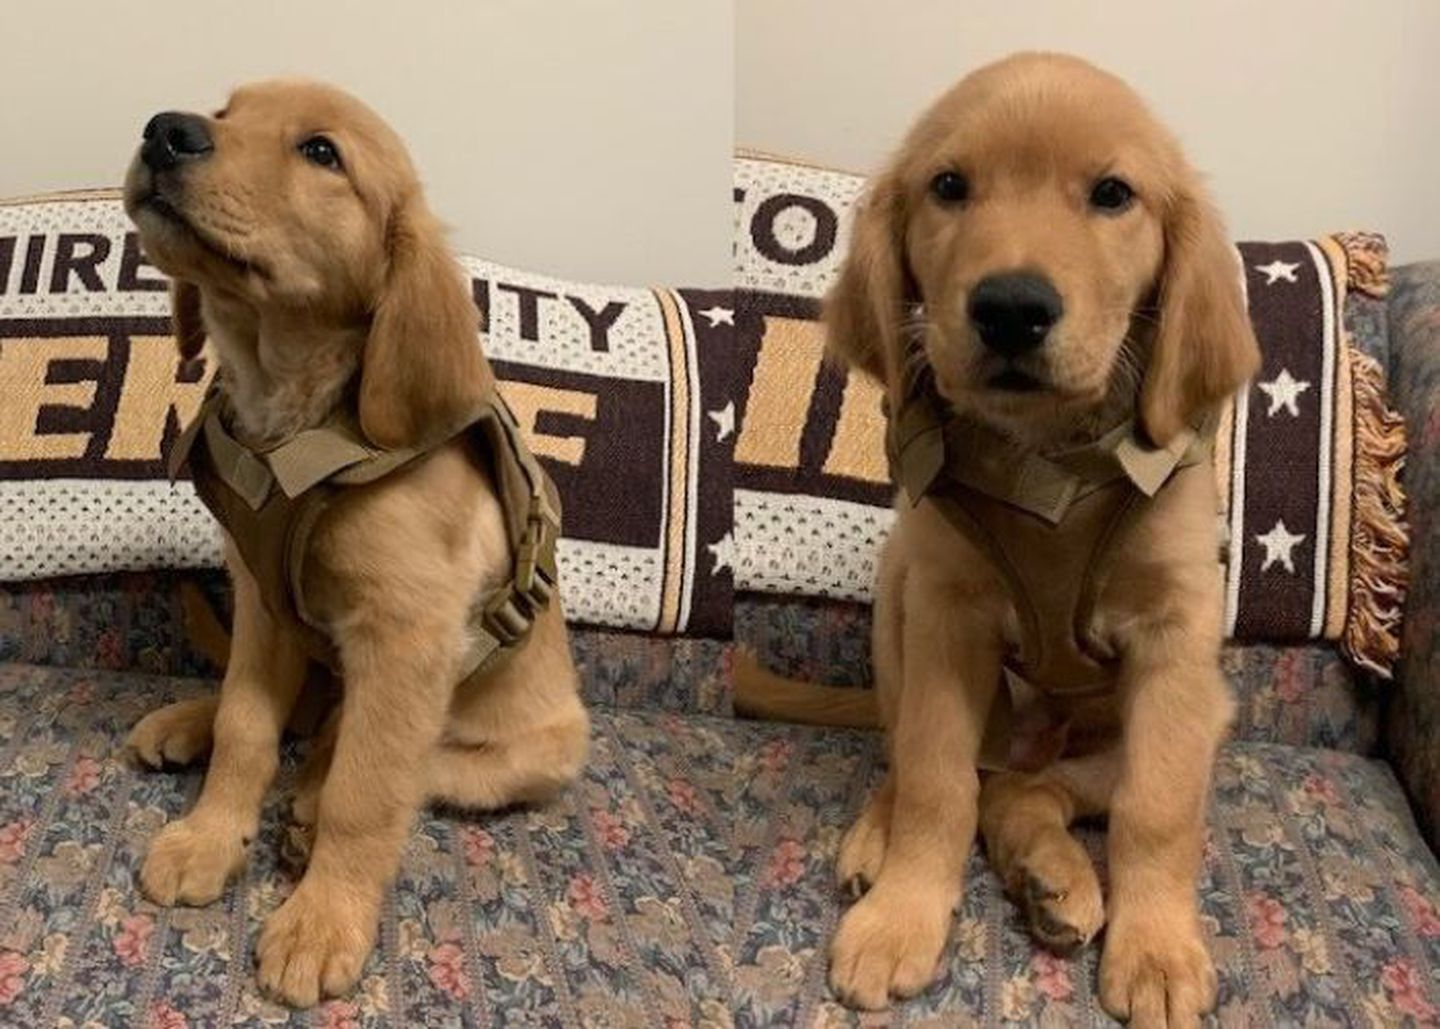 Puppy is newest deputy in training at sheriff's office in